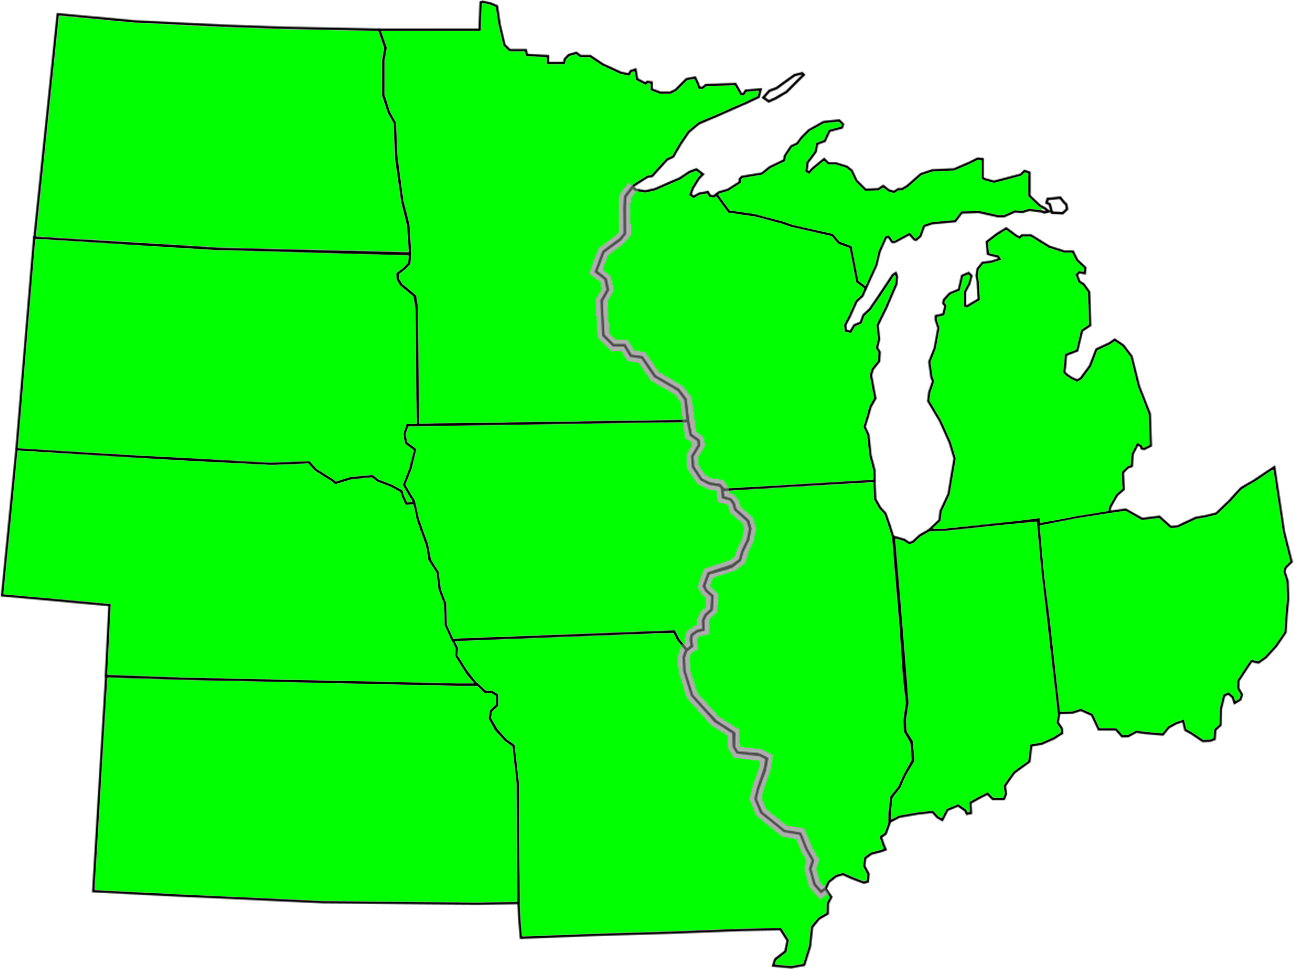 midwest-region_green.png